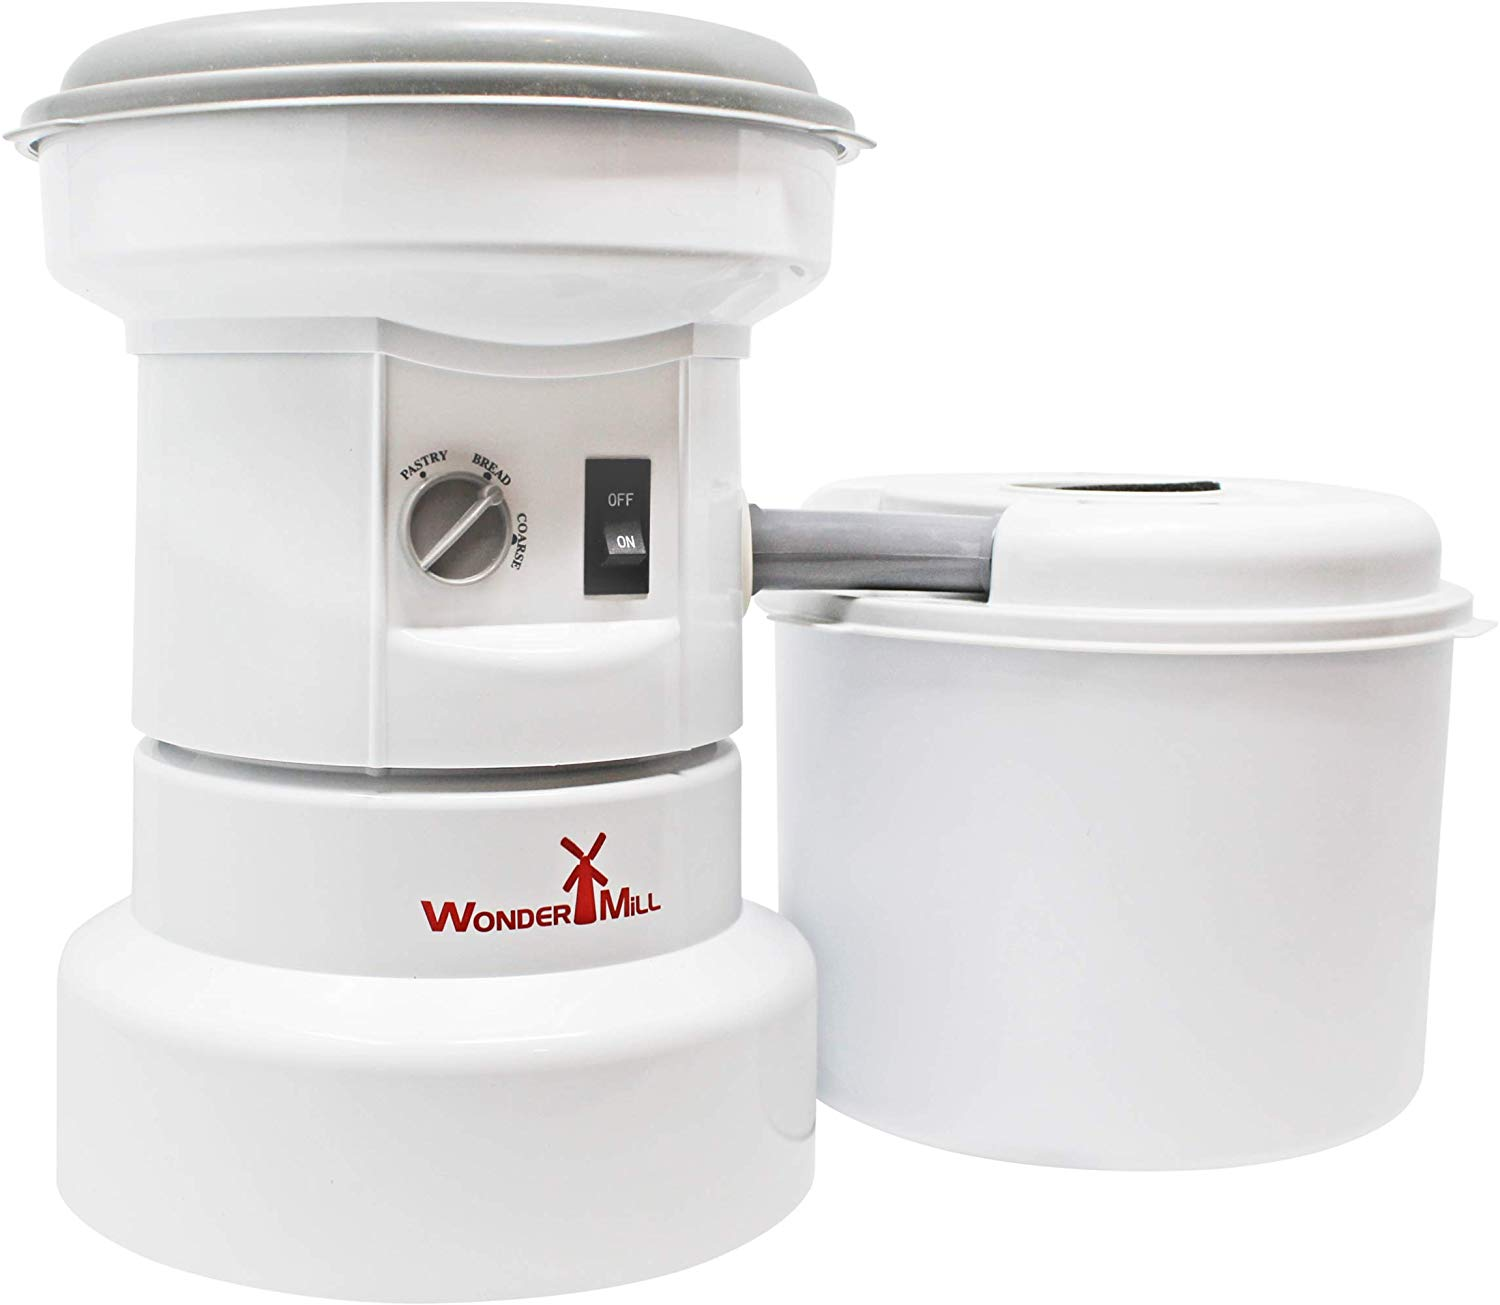 Review of Powerful Electric Grain Mill Grinder for Home and Professional Use by Wondermill